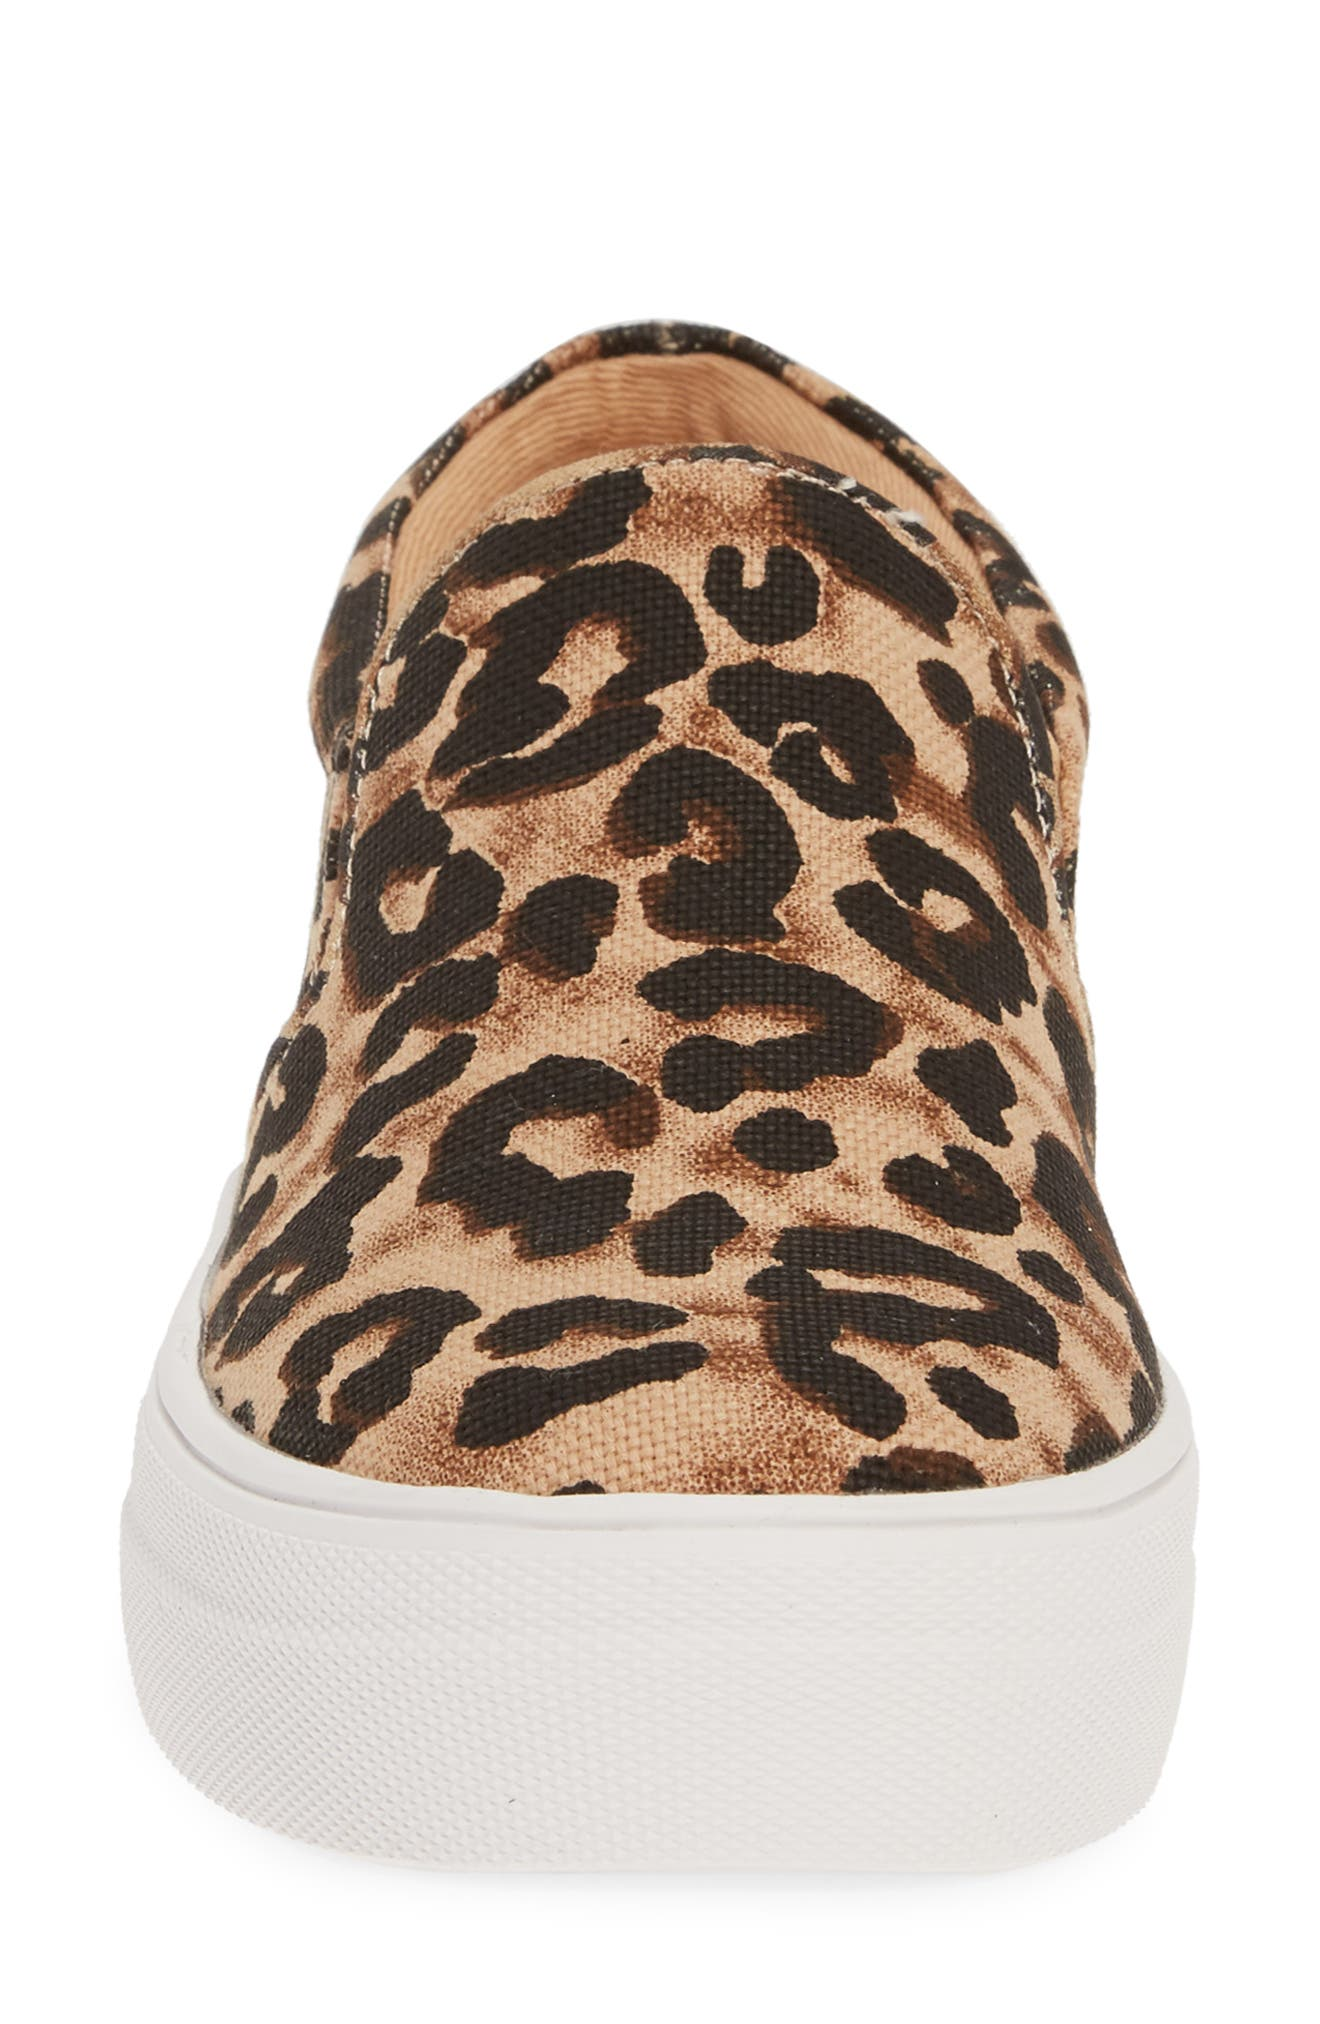 STEVE MADDEN,                             Gills Platform Slip-On Sneaker,                             Alternate thumbnail 4, color,                             LEOPARD PRINT